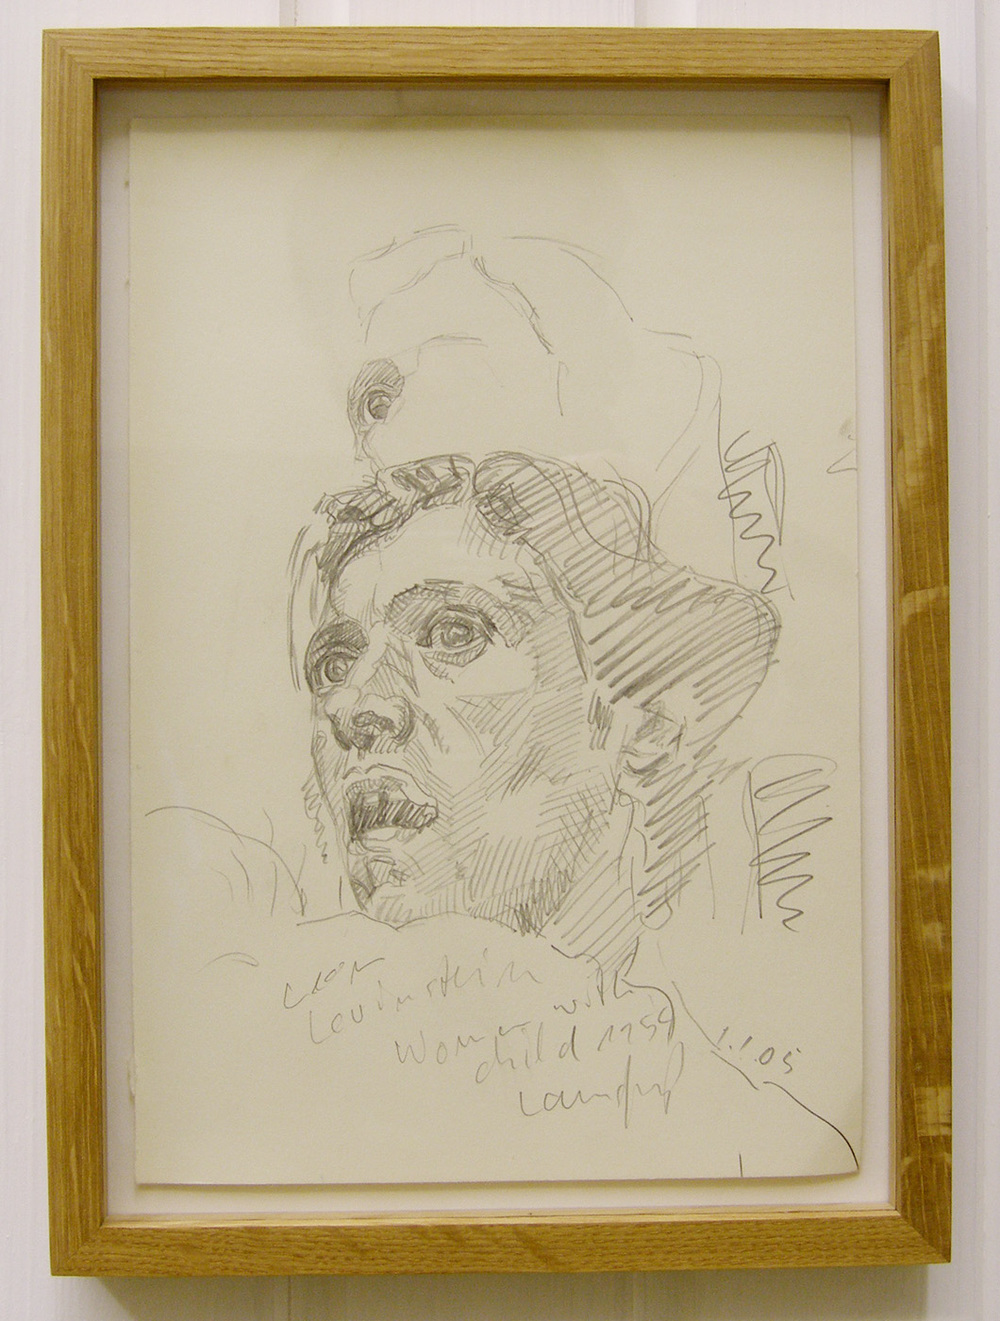 Ulrich Lamsfuss   Leon Levinstein, Woman with Child 1 (5/05) , 2005 pencil on paper 26 x 18 inches (framed) 30 x 22 cm